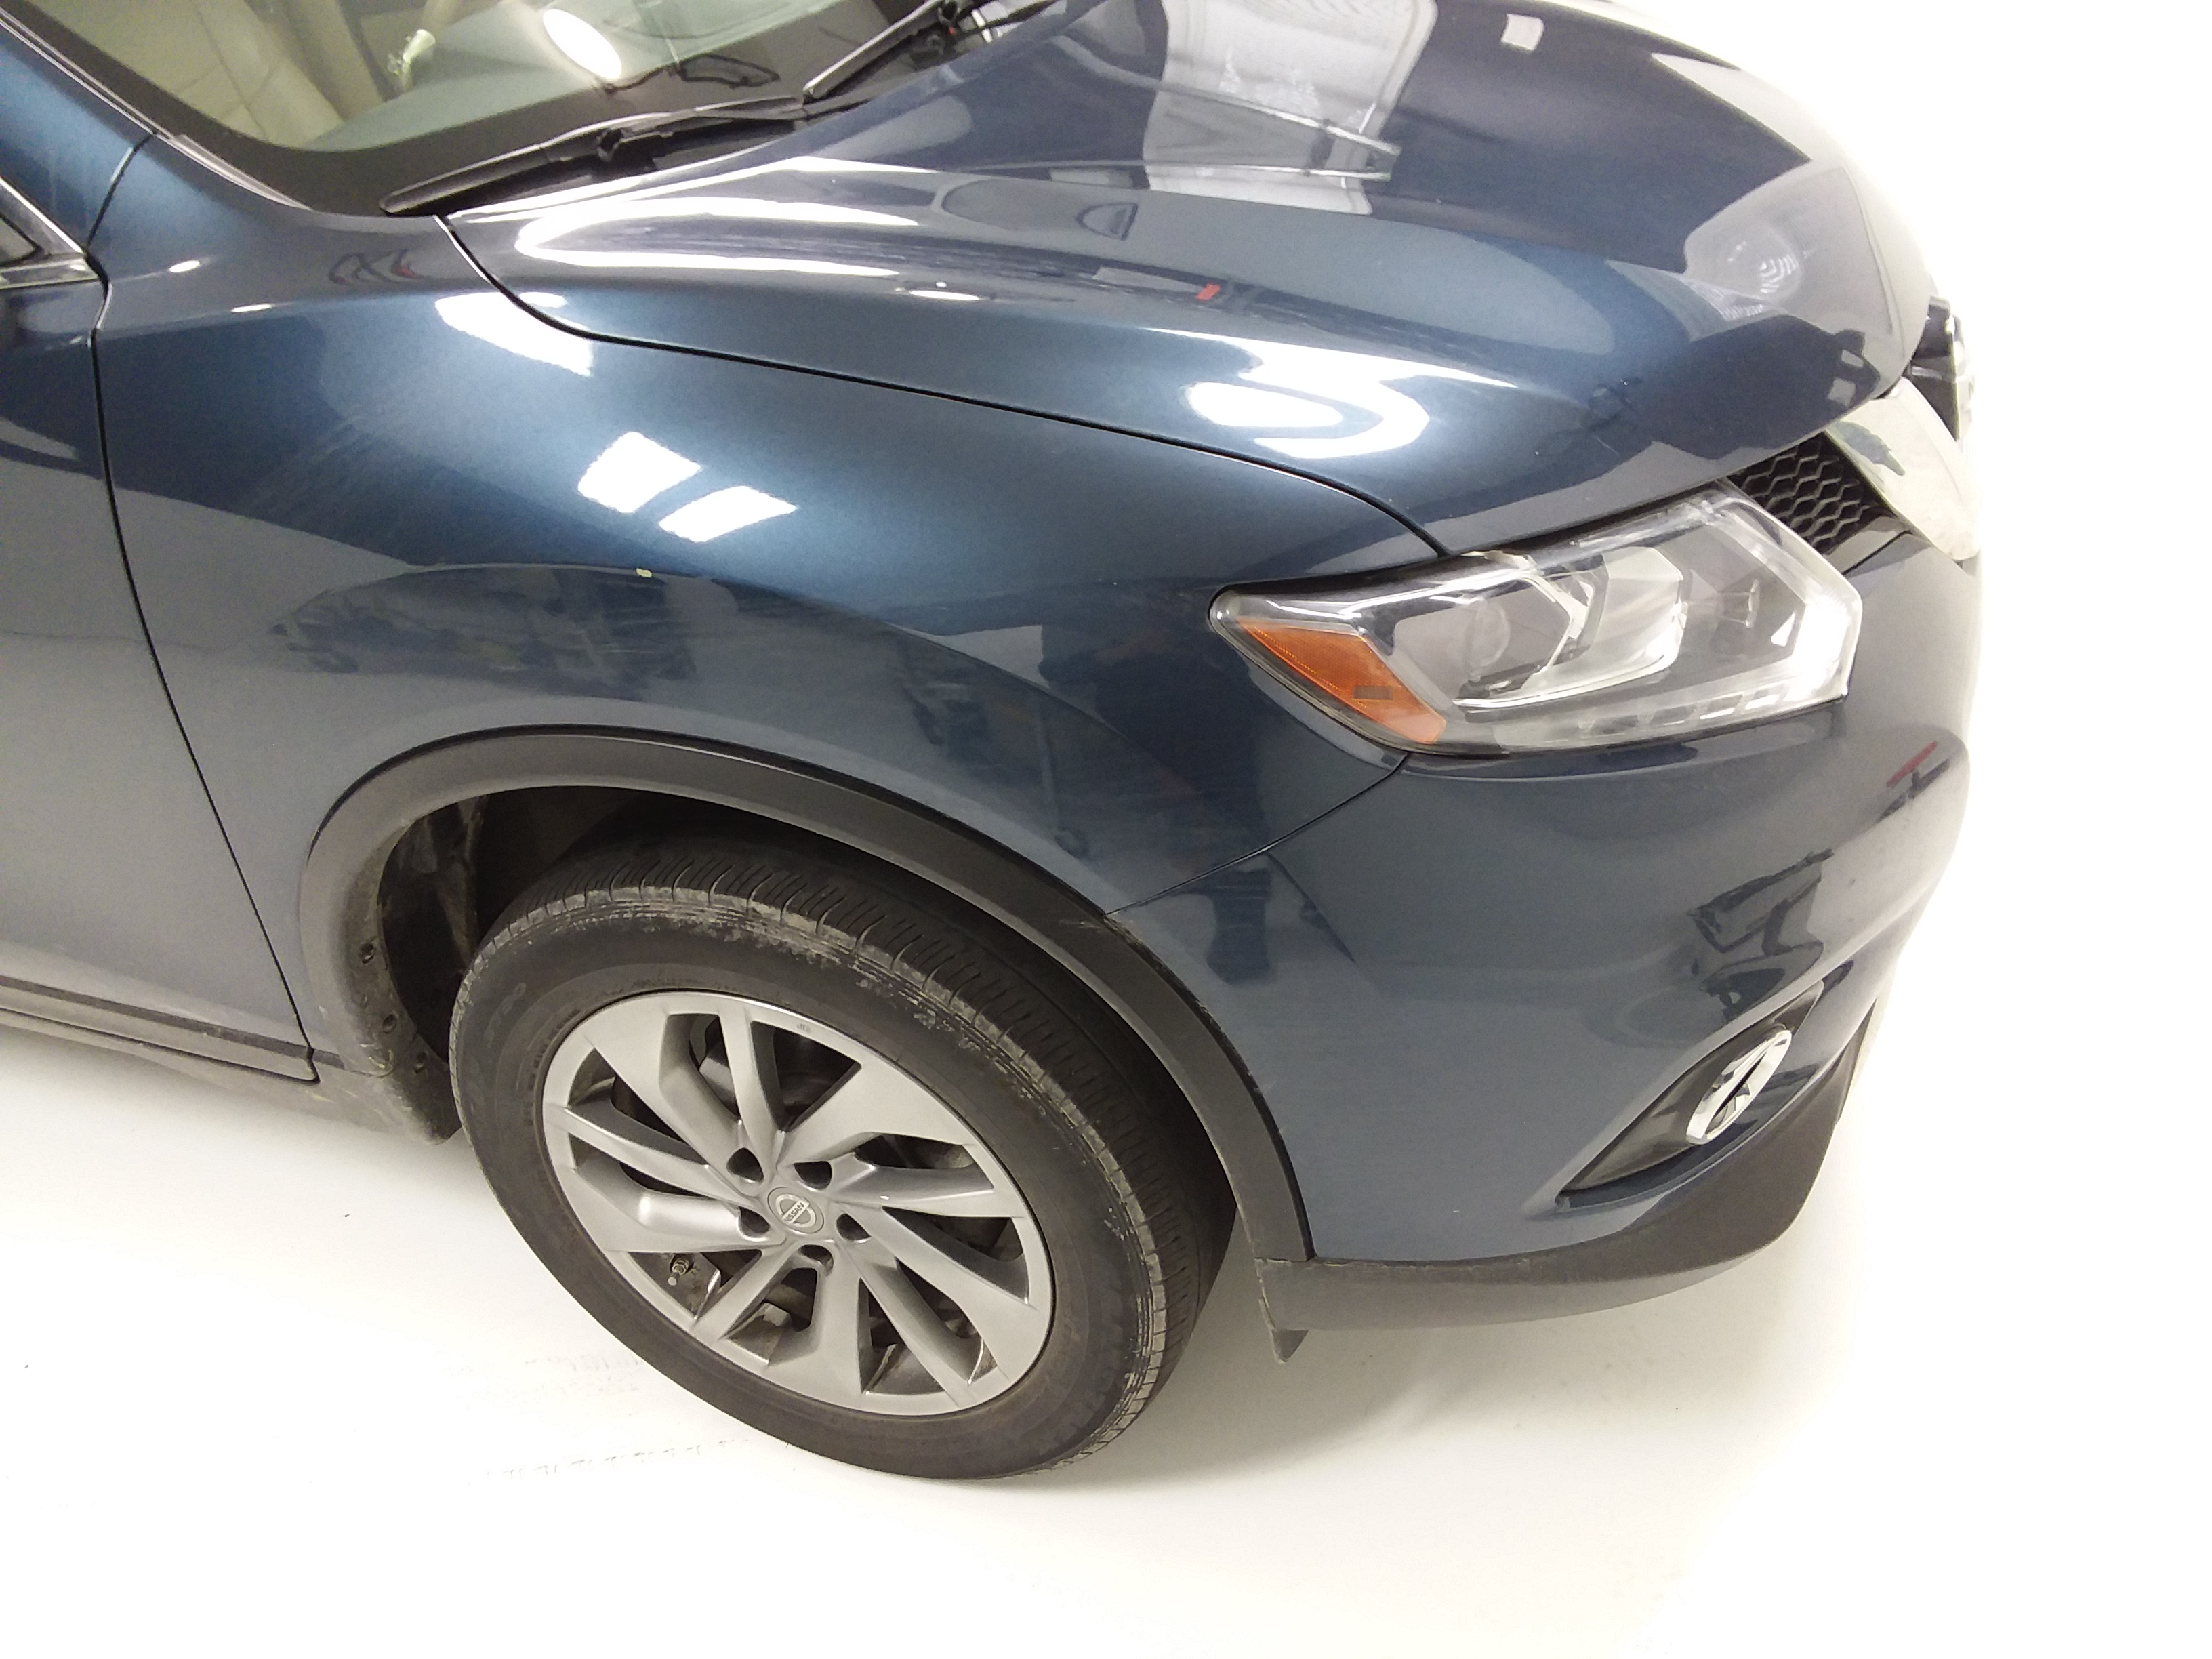 Nissan Rogue Before Decon